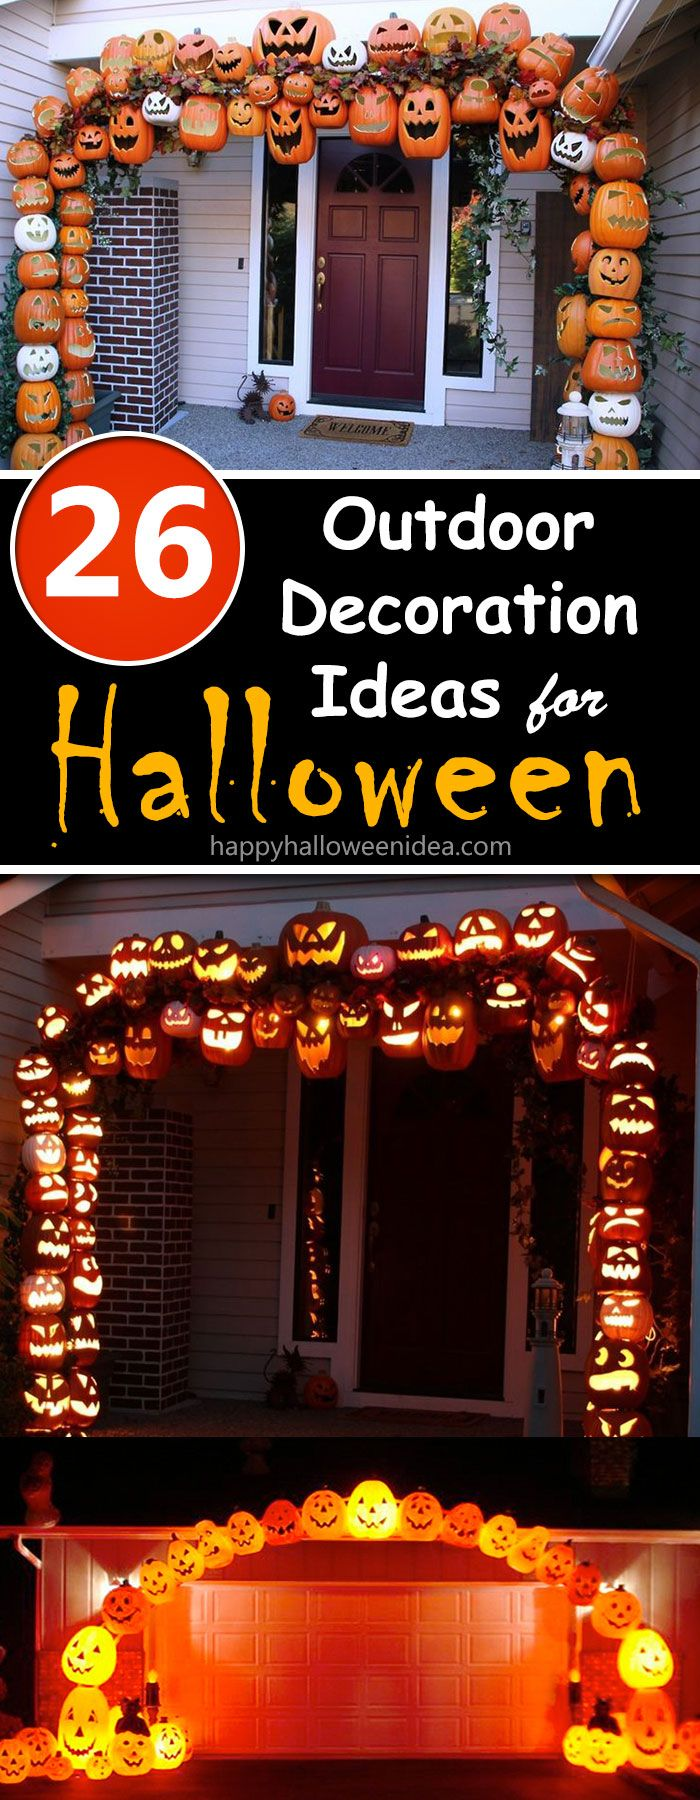 26 Outdoor Halloween Decoration Ideas to Spook Out Your